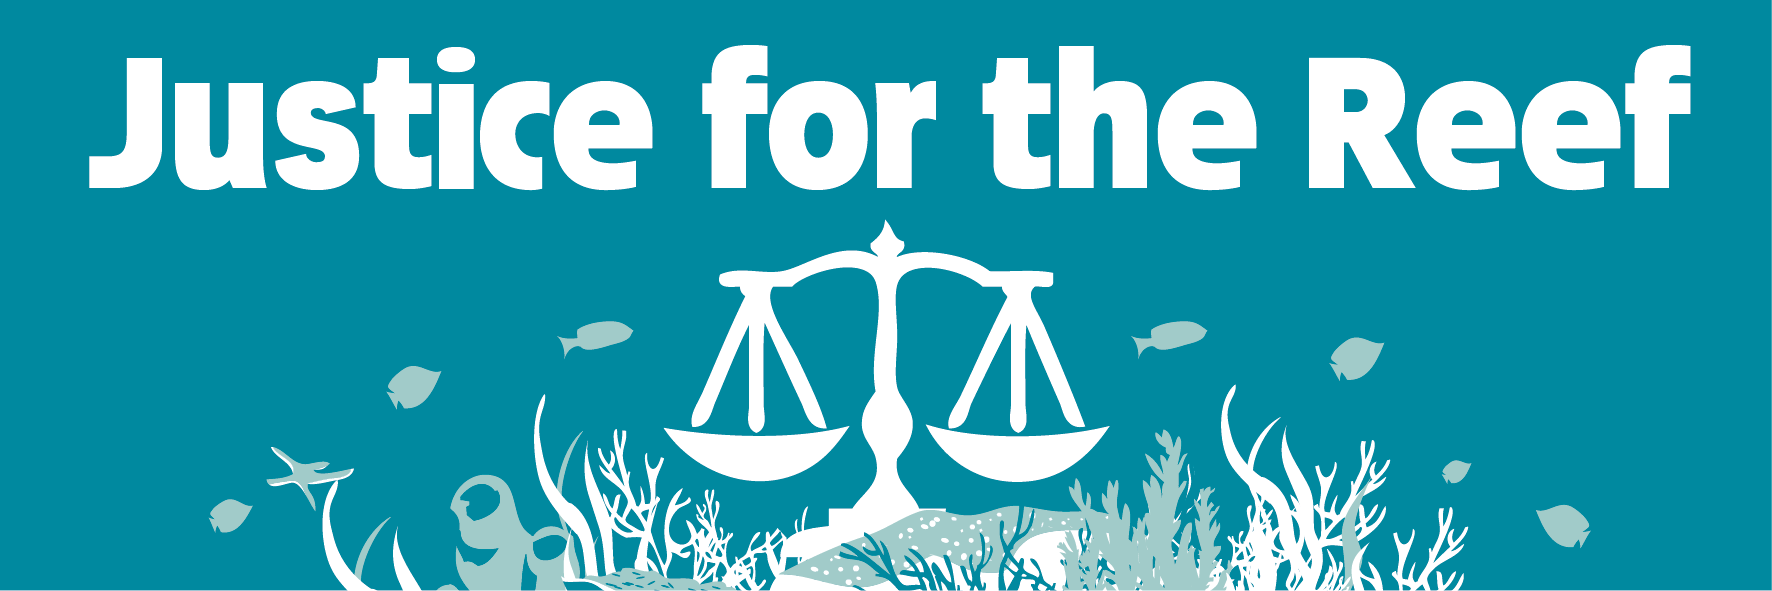 Justice_For_The_Reef_Sticker-02.png